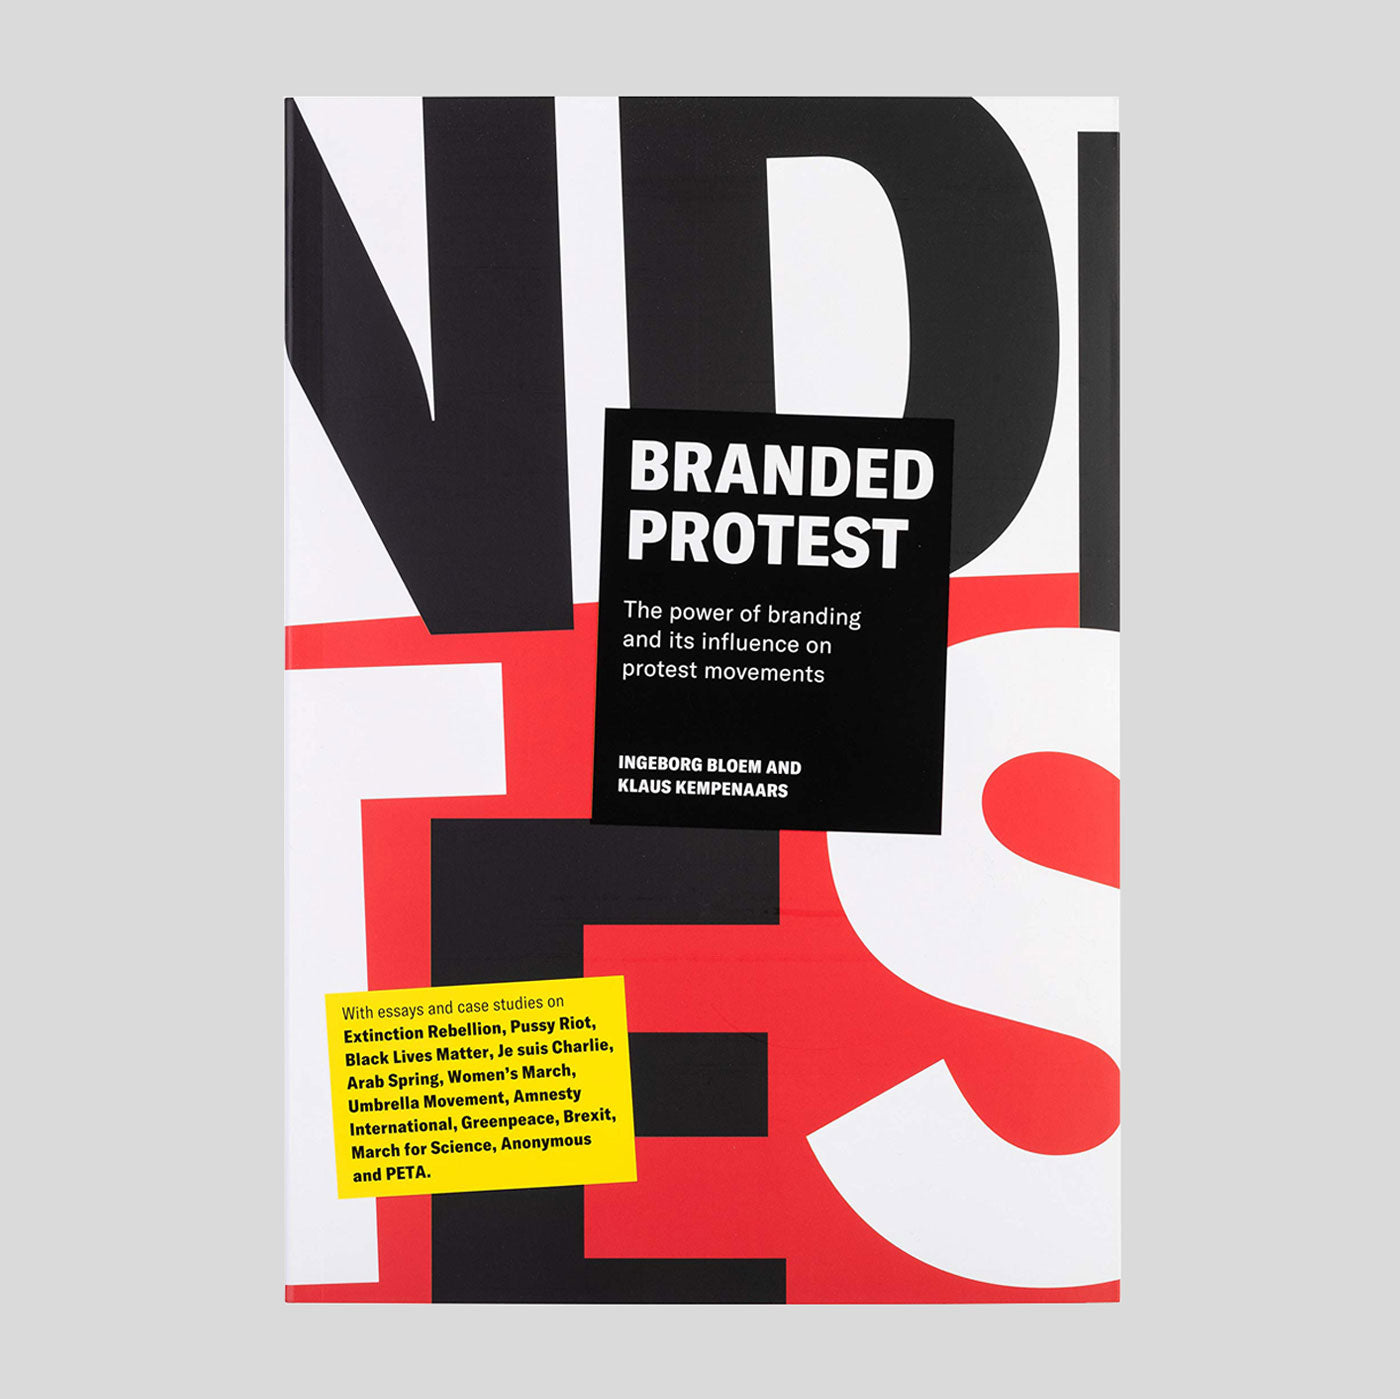 Branded Protest - Ingeborg Bloem & Klaus Kempenaars - Colours May Vary